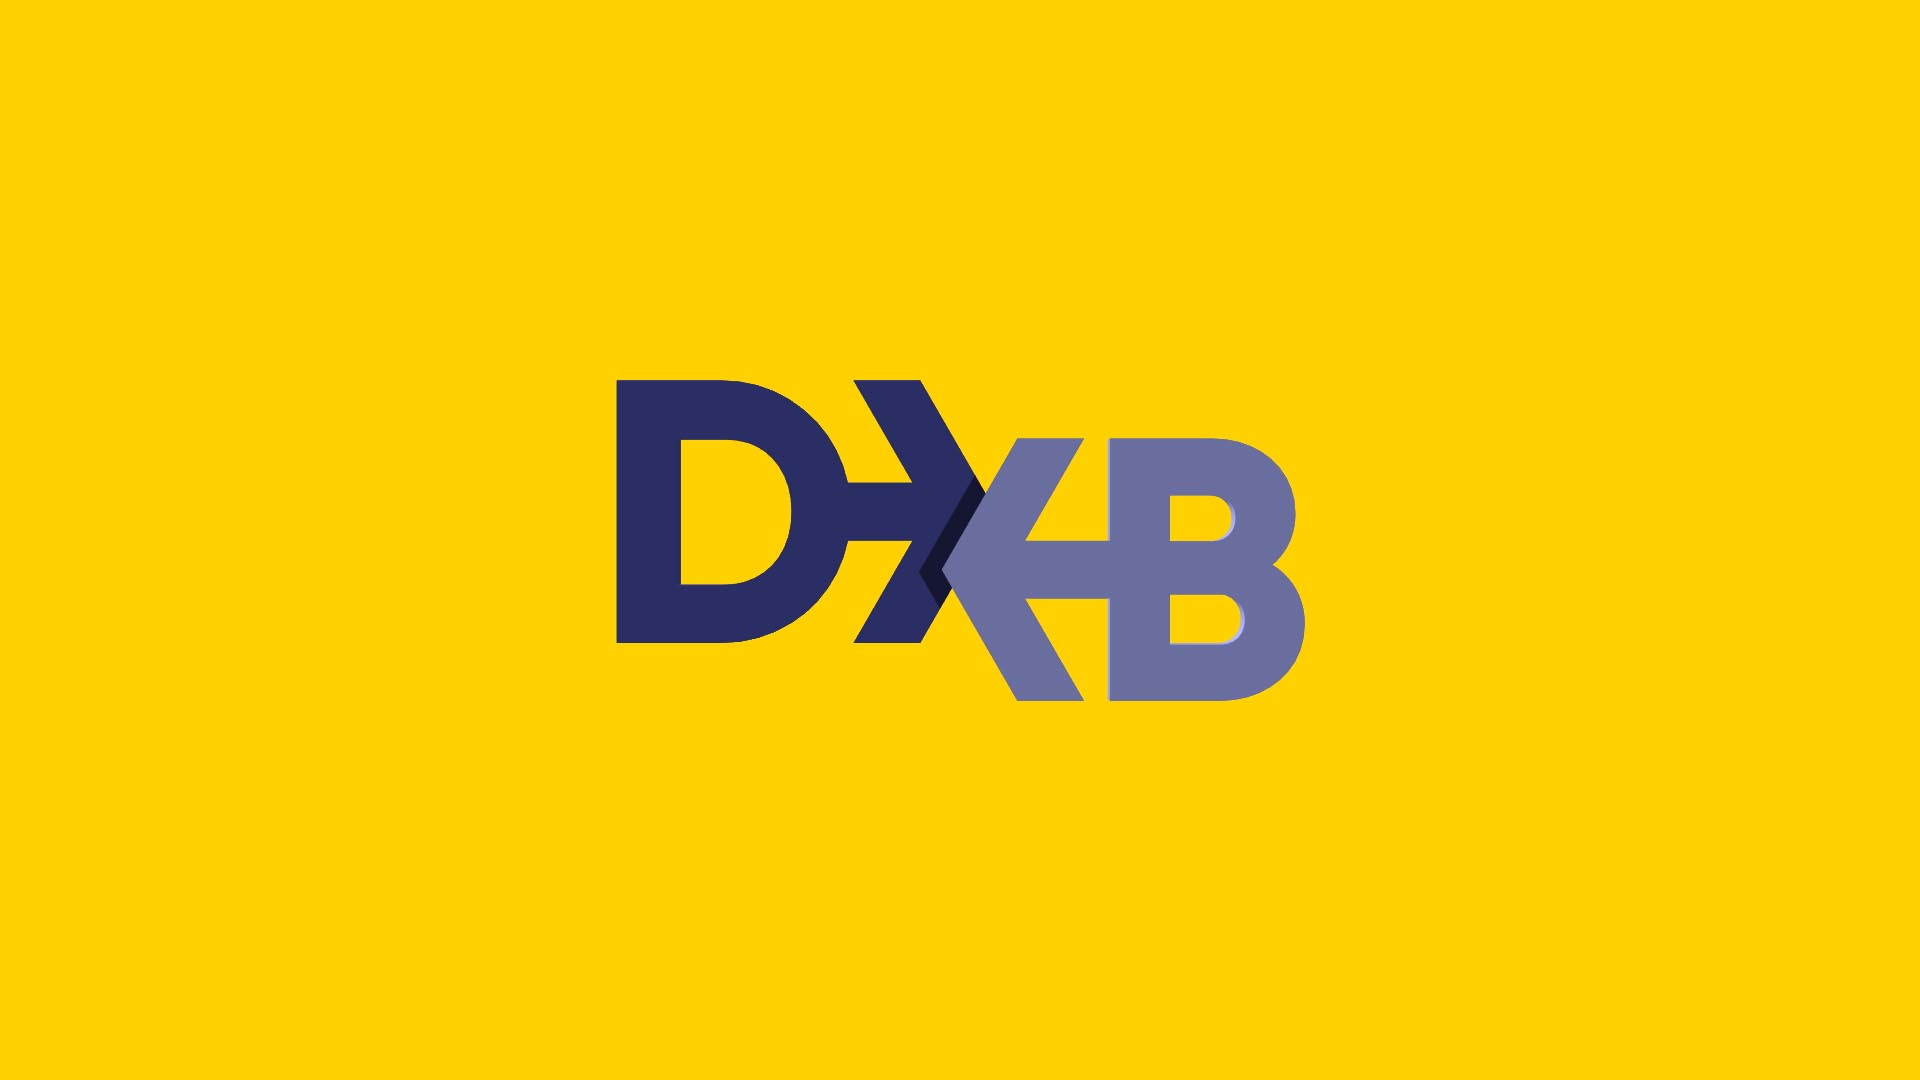 DXB 3D logo animation